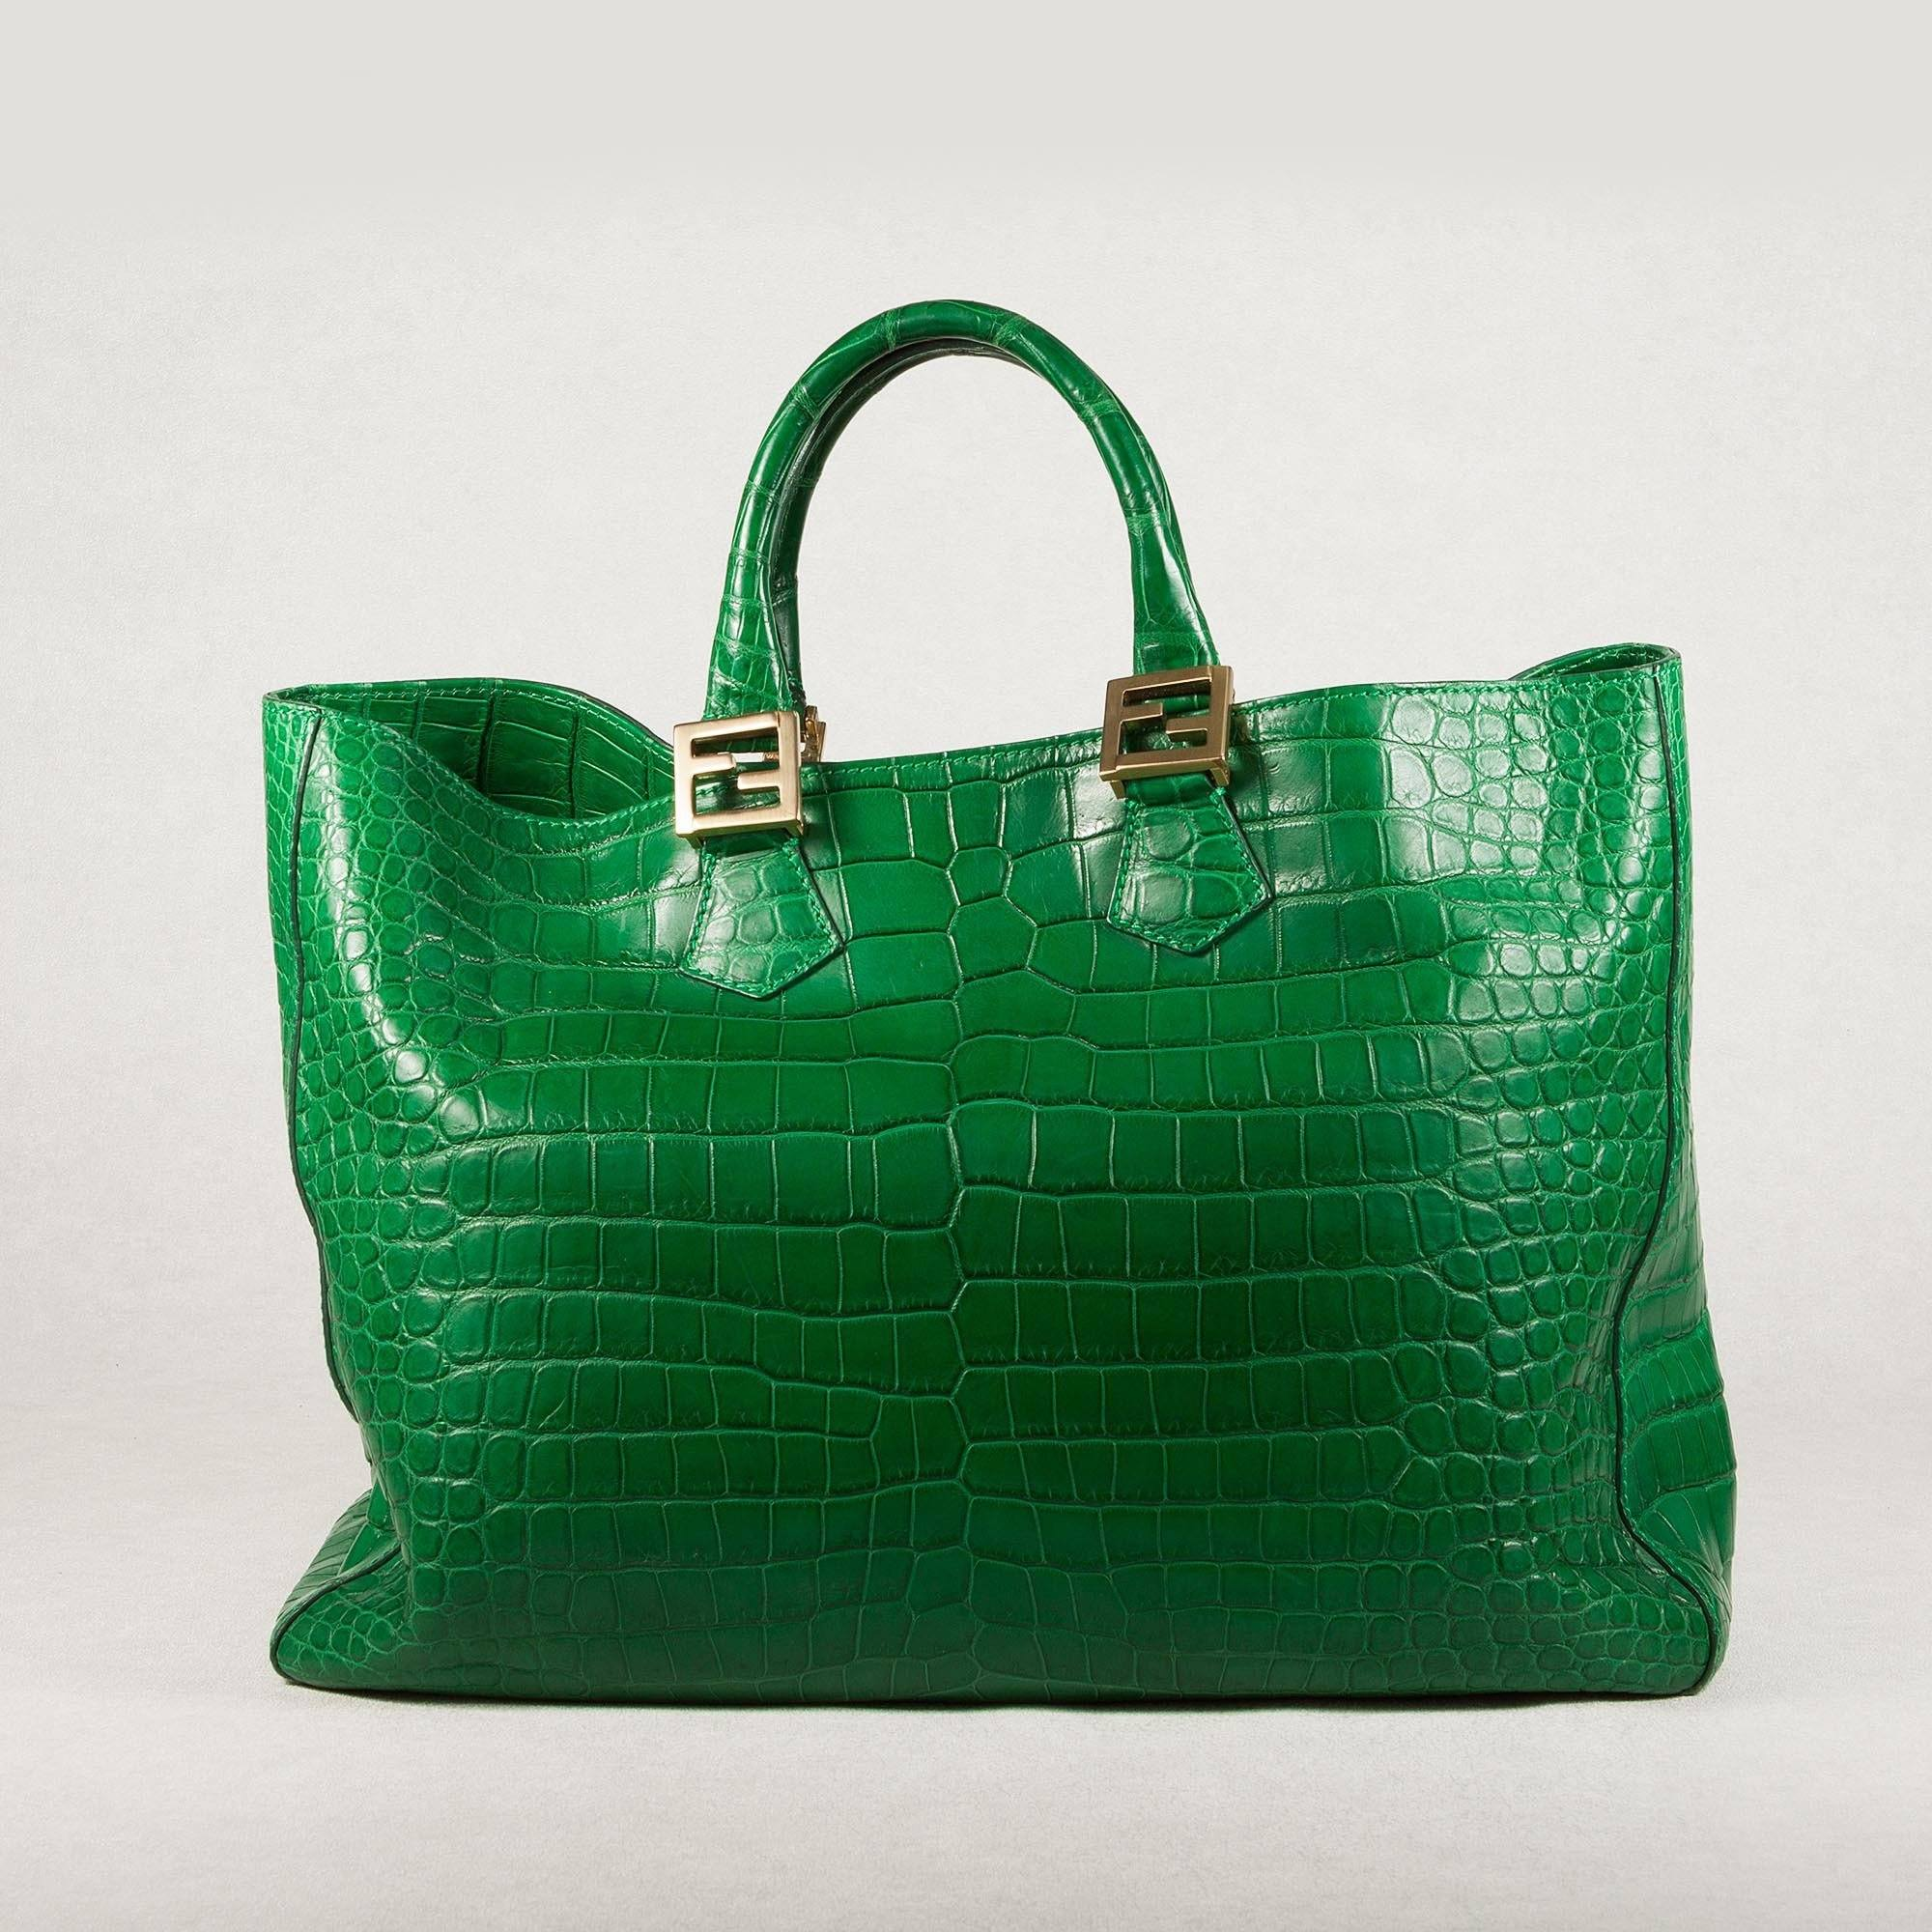 0f37ed879513 Fendi Crocodile Bag Green | Stanford Center for Opportunity Policy ...